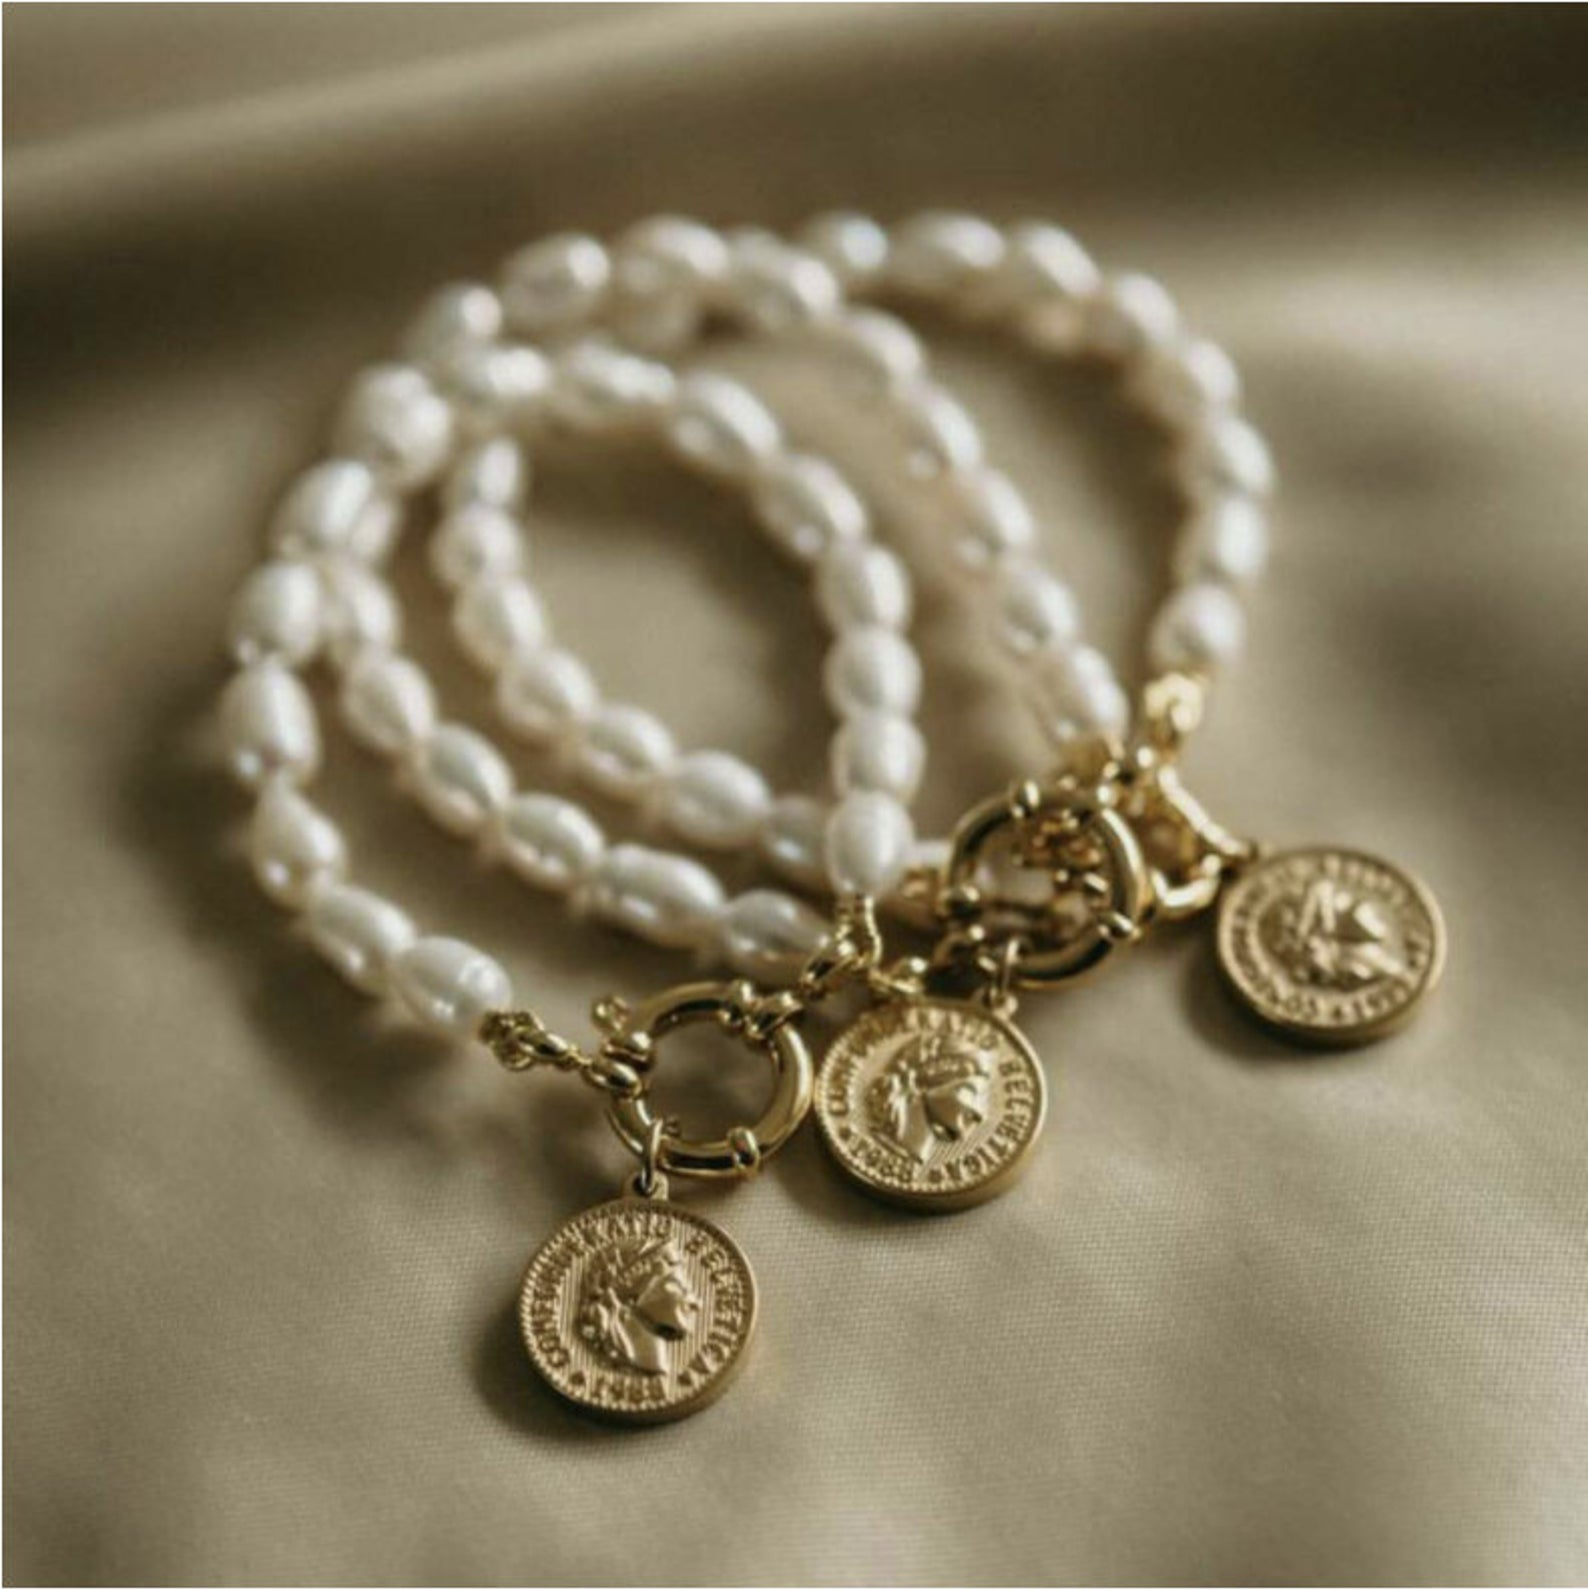 Darling Original Dainty Dos Pesos Gold Coin Charm Pendant Bracelet with Natural Freshwater Pearls